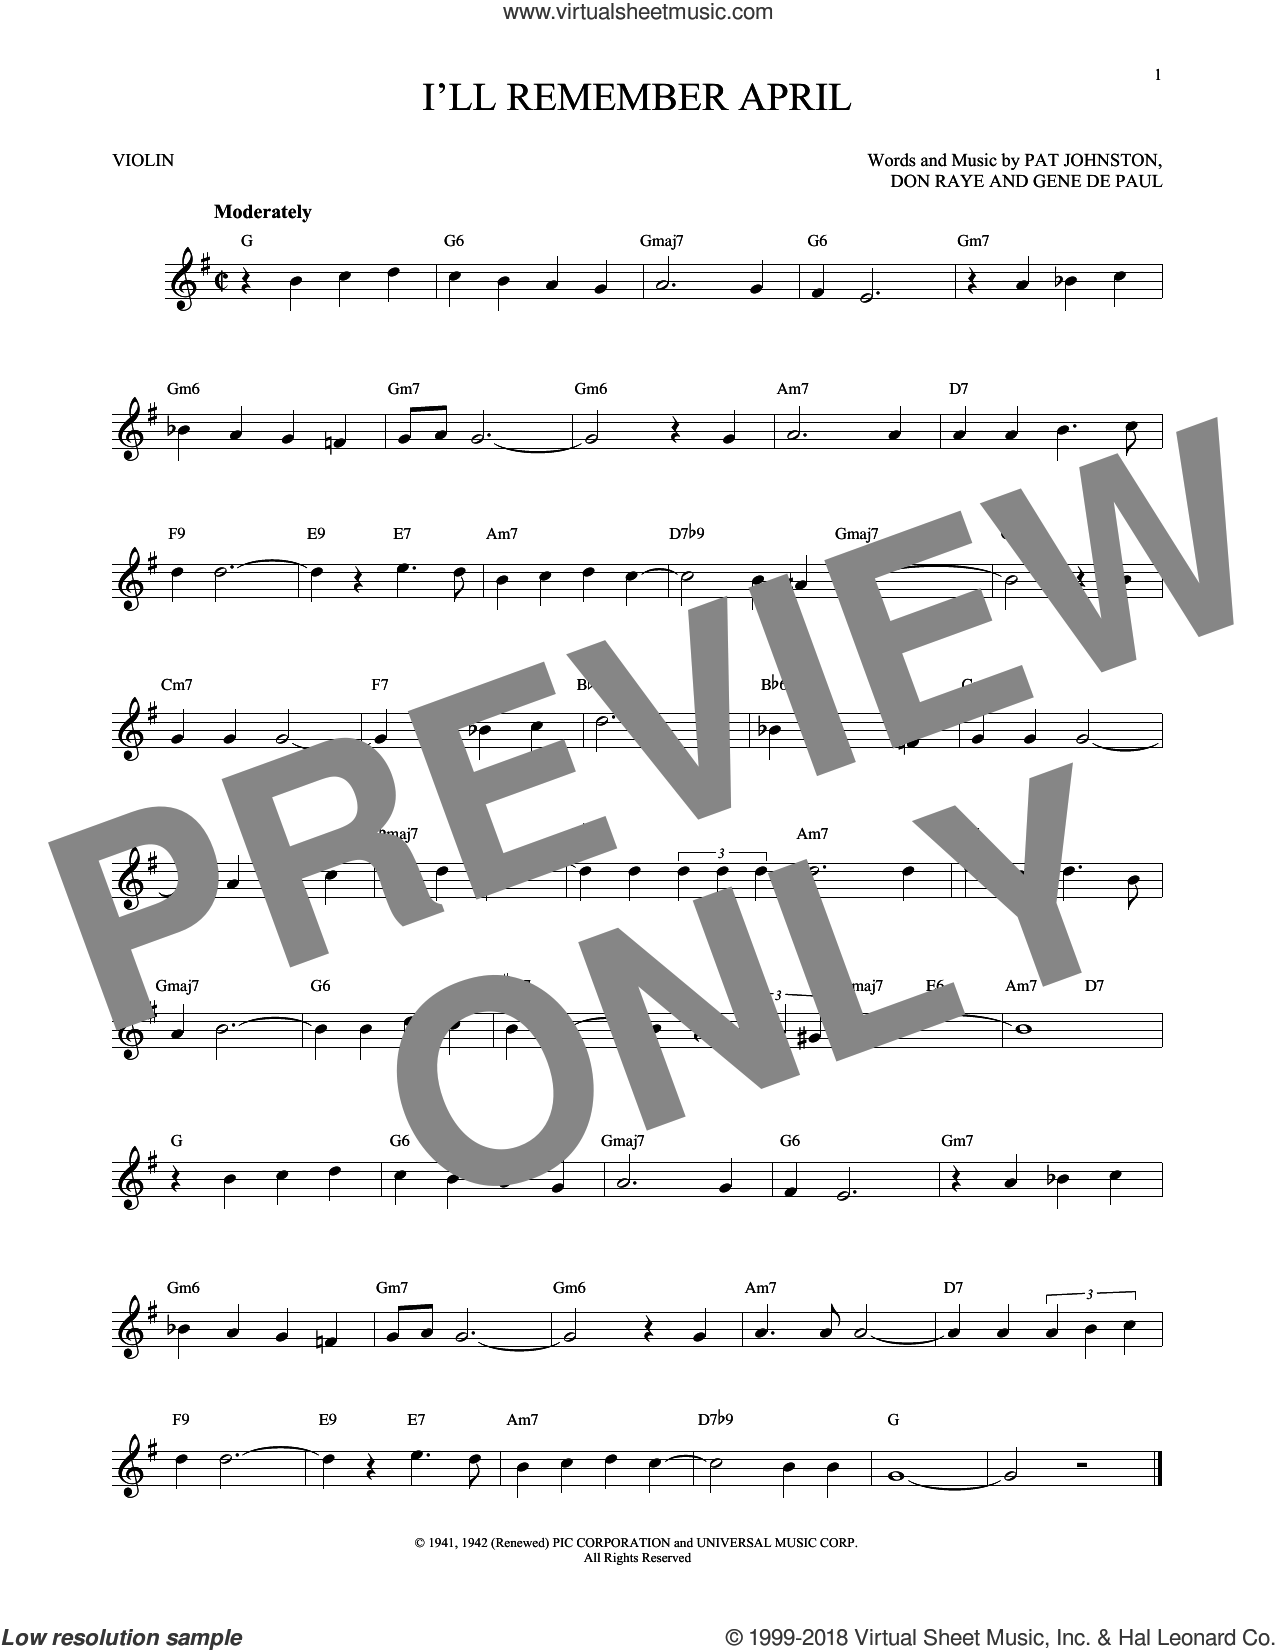 I'll Remember April sheet music for violin solo by Woody Herman & His Orchestra, Don Raye, Gene DePaul and Pat Johnston, intermediate skill level